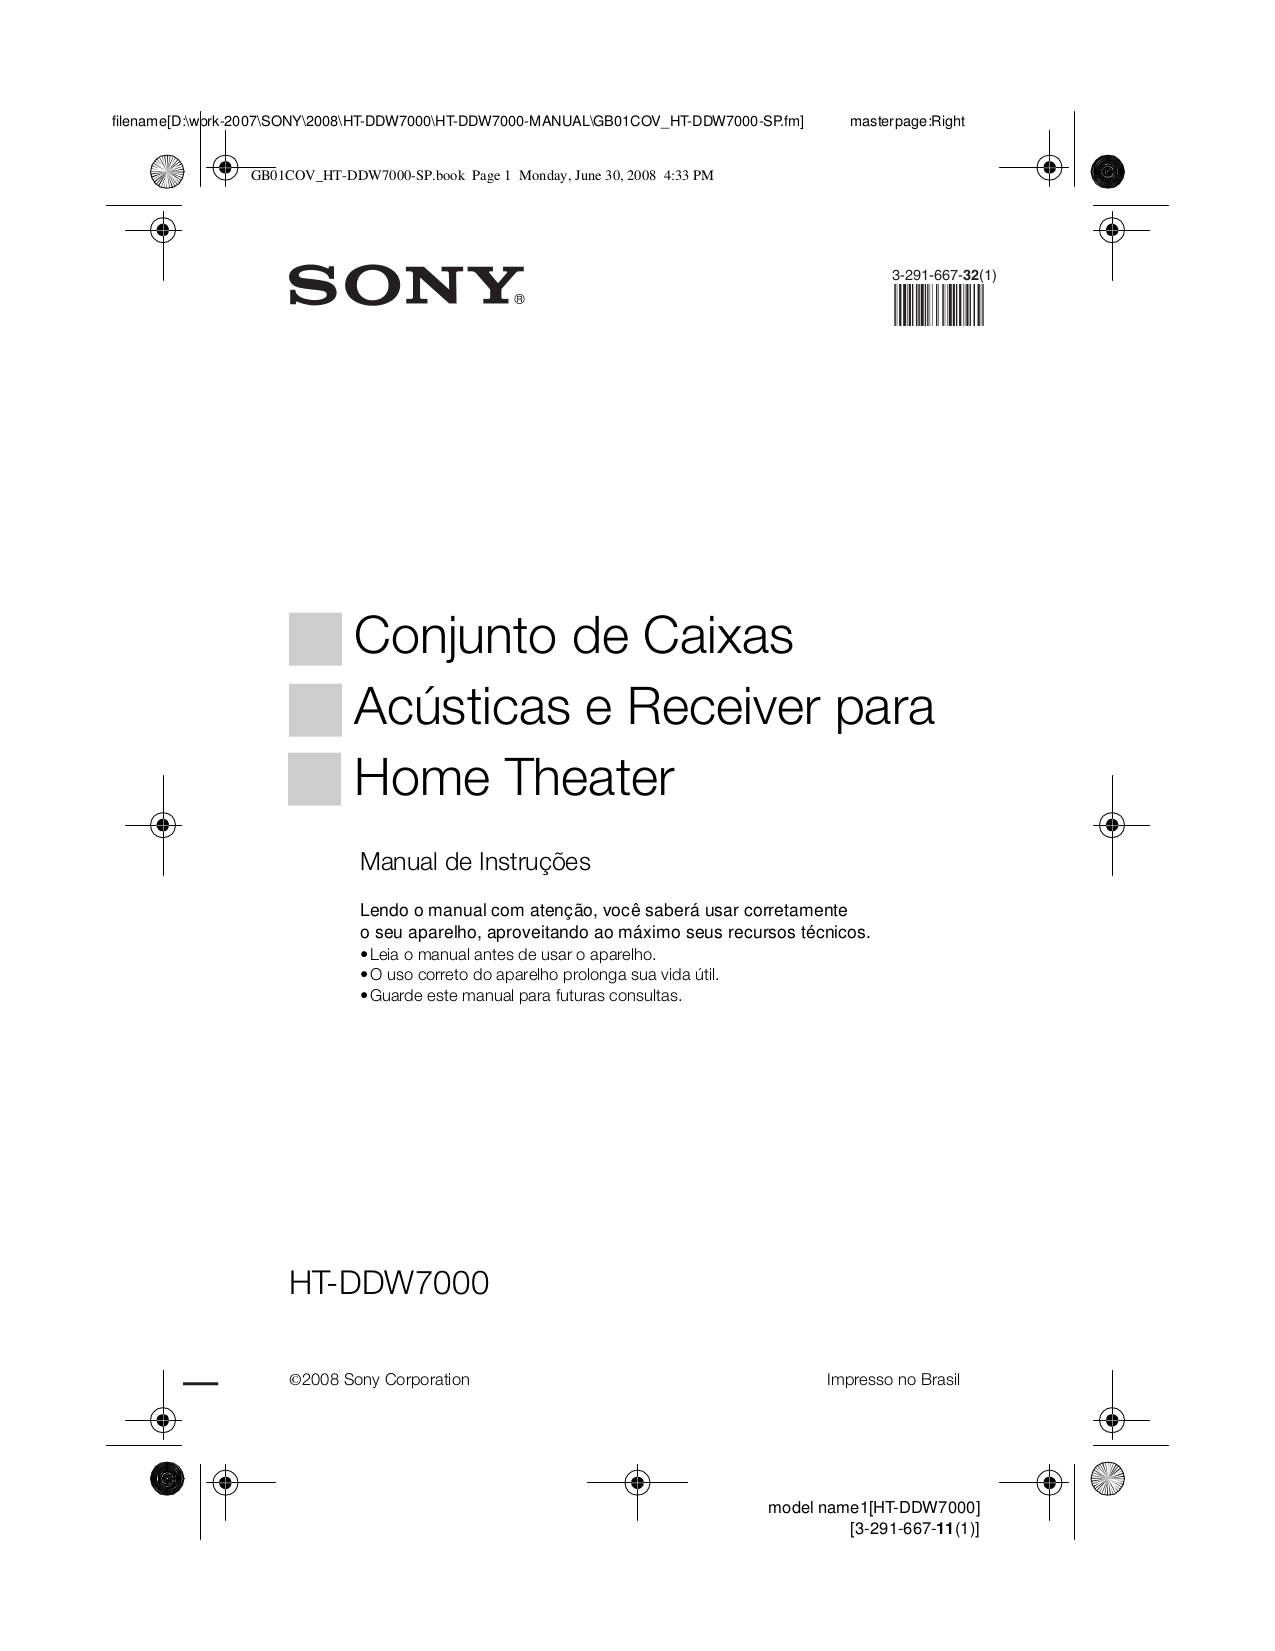 Download free pdf for sony ht ddw1500 home theater manual